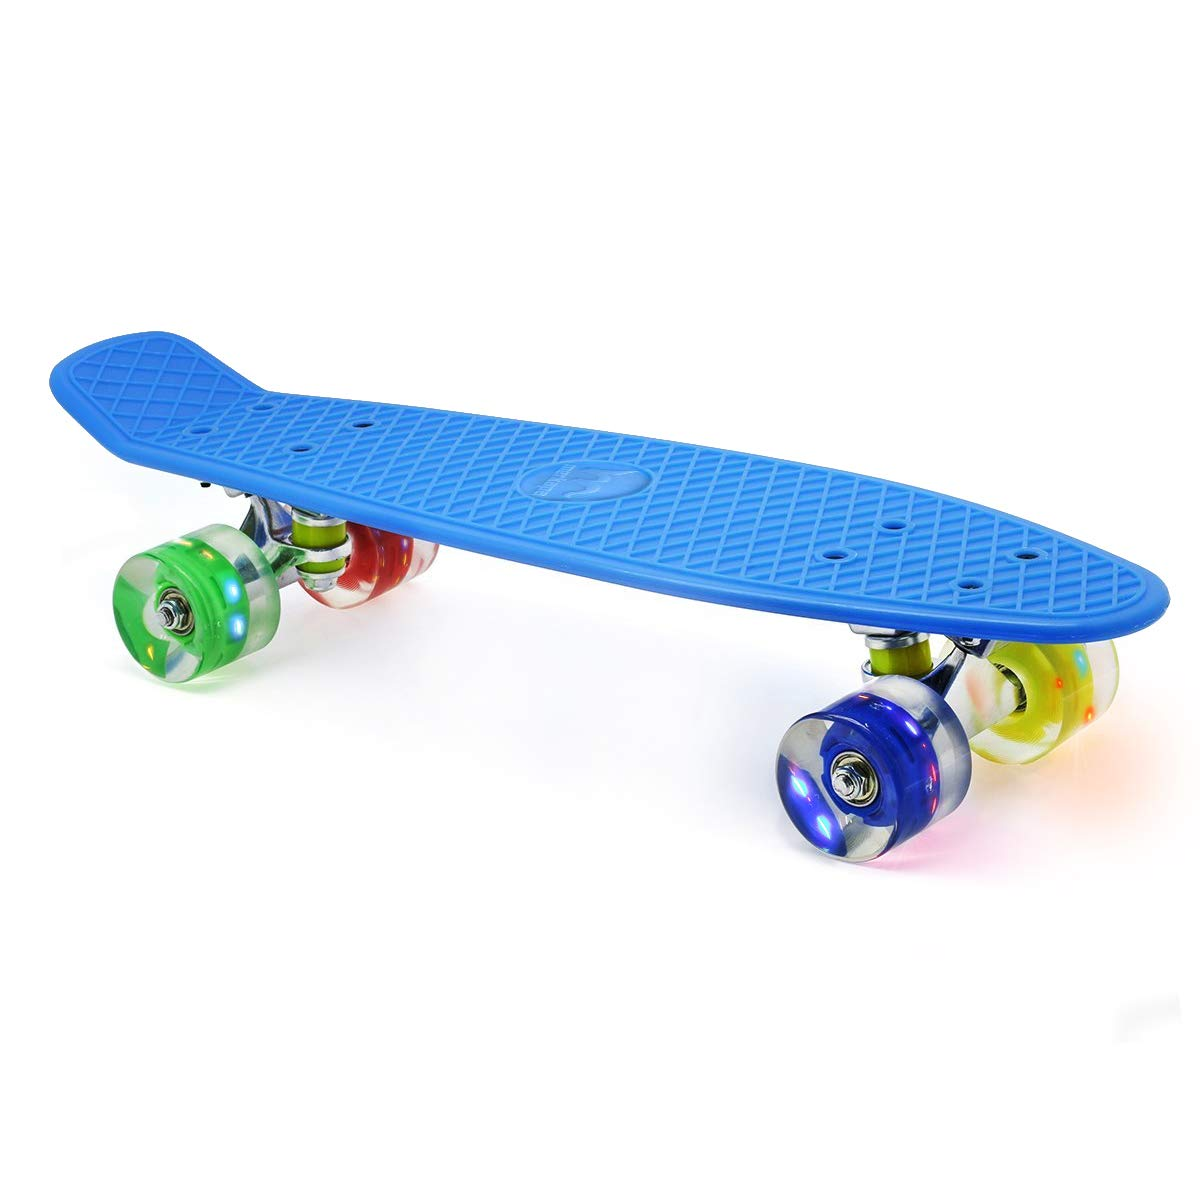 Merkapa Complete Skateboard Colorful Beginners